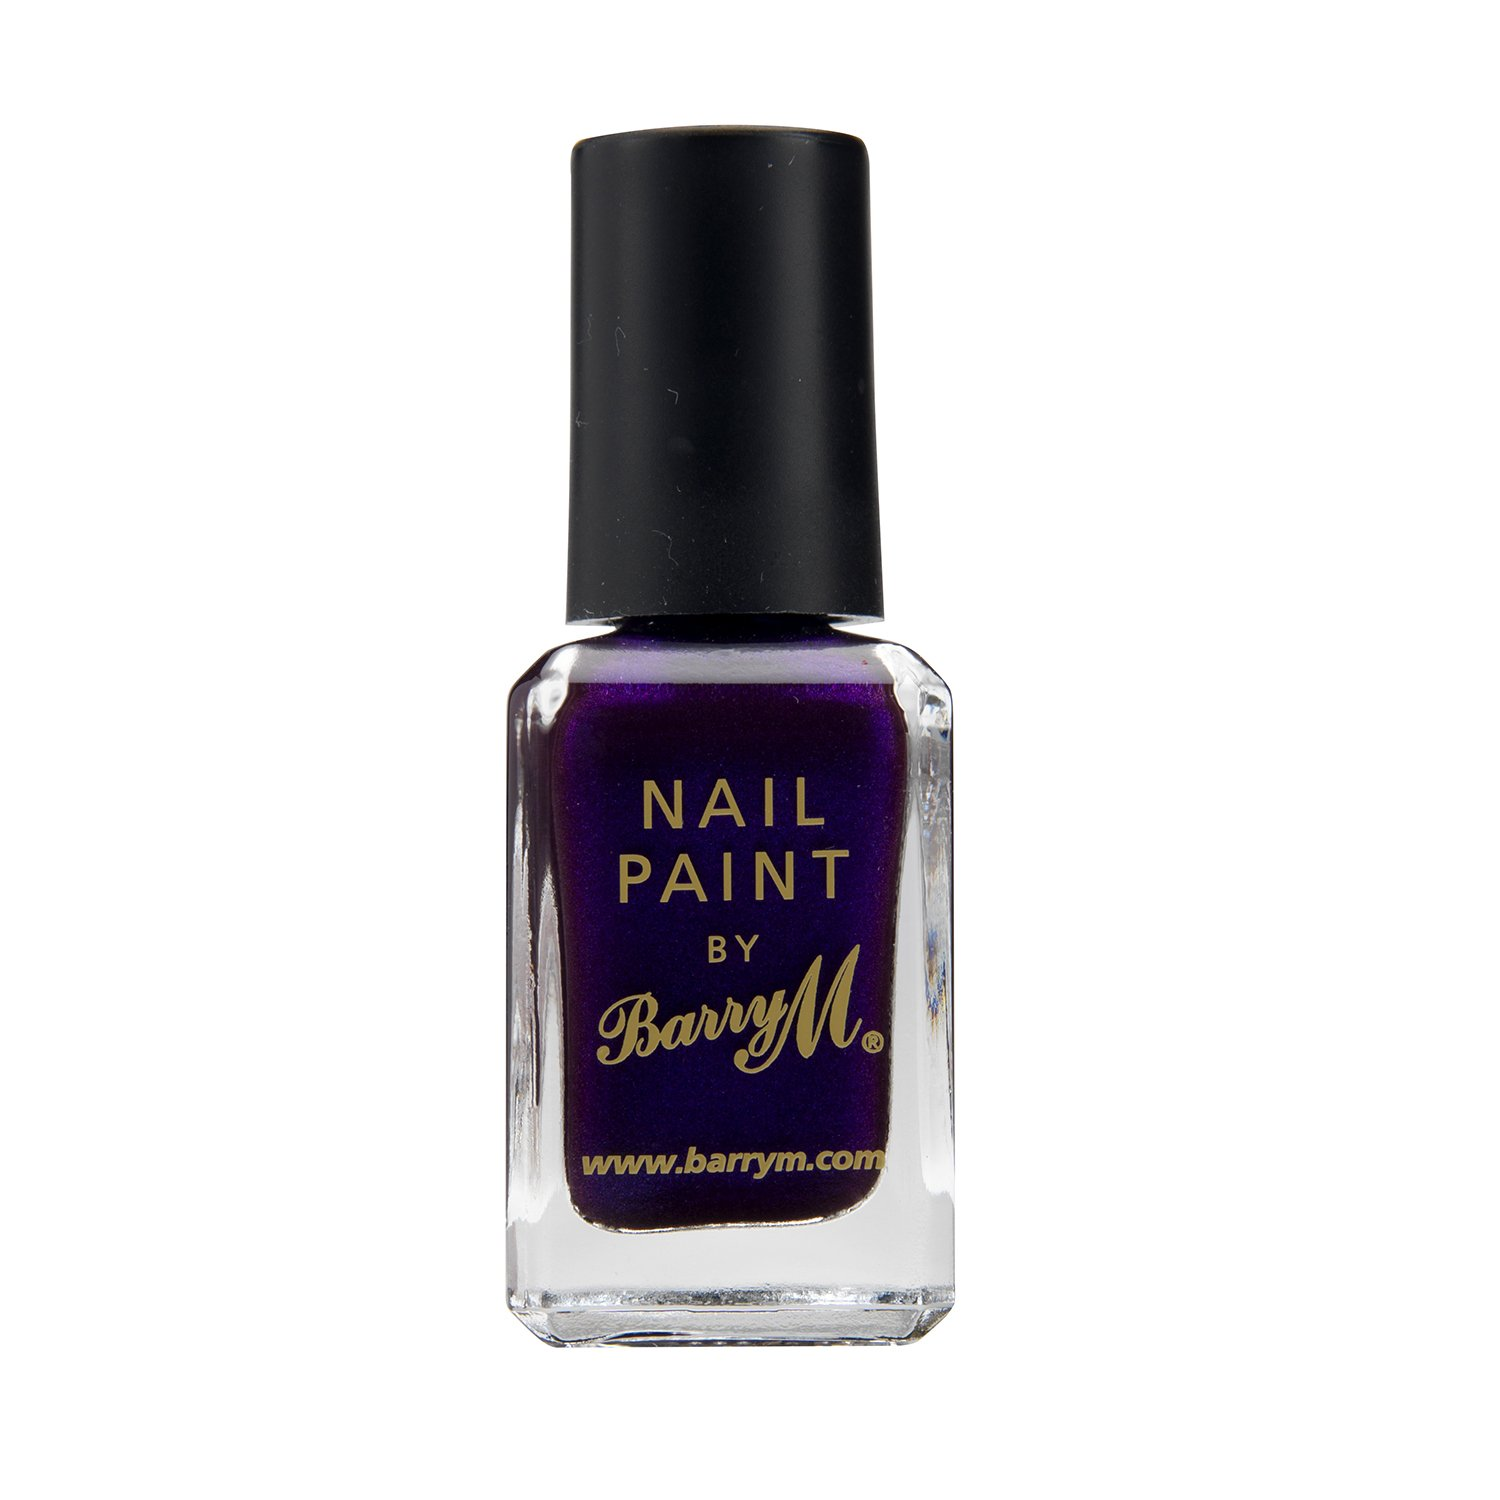 Barry M Nail Paint, 54 , 3 In 1 Base Coat, Top Coat, Nail Hardener All in One, Clear 3 In 1 Base Coat BMBE4 nail54